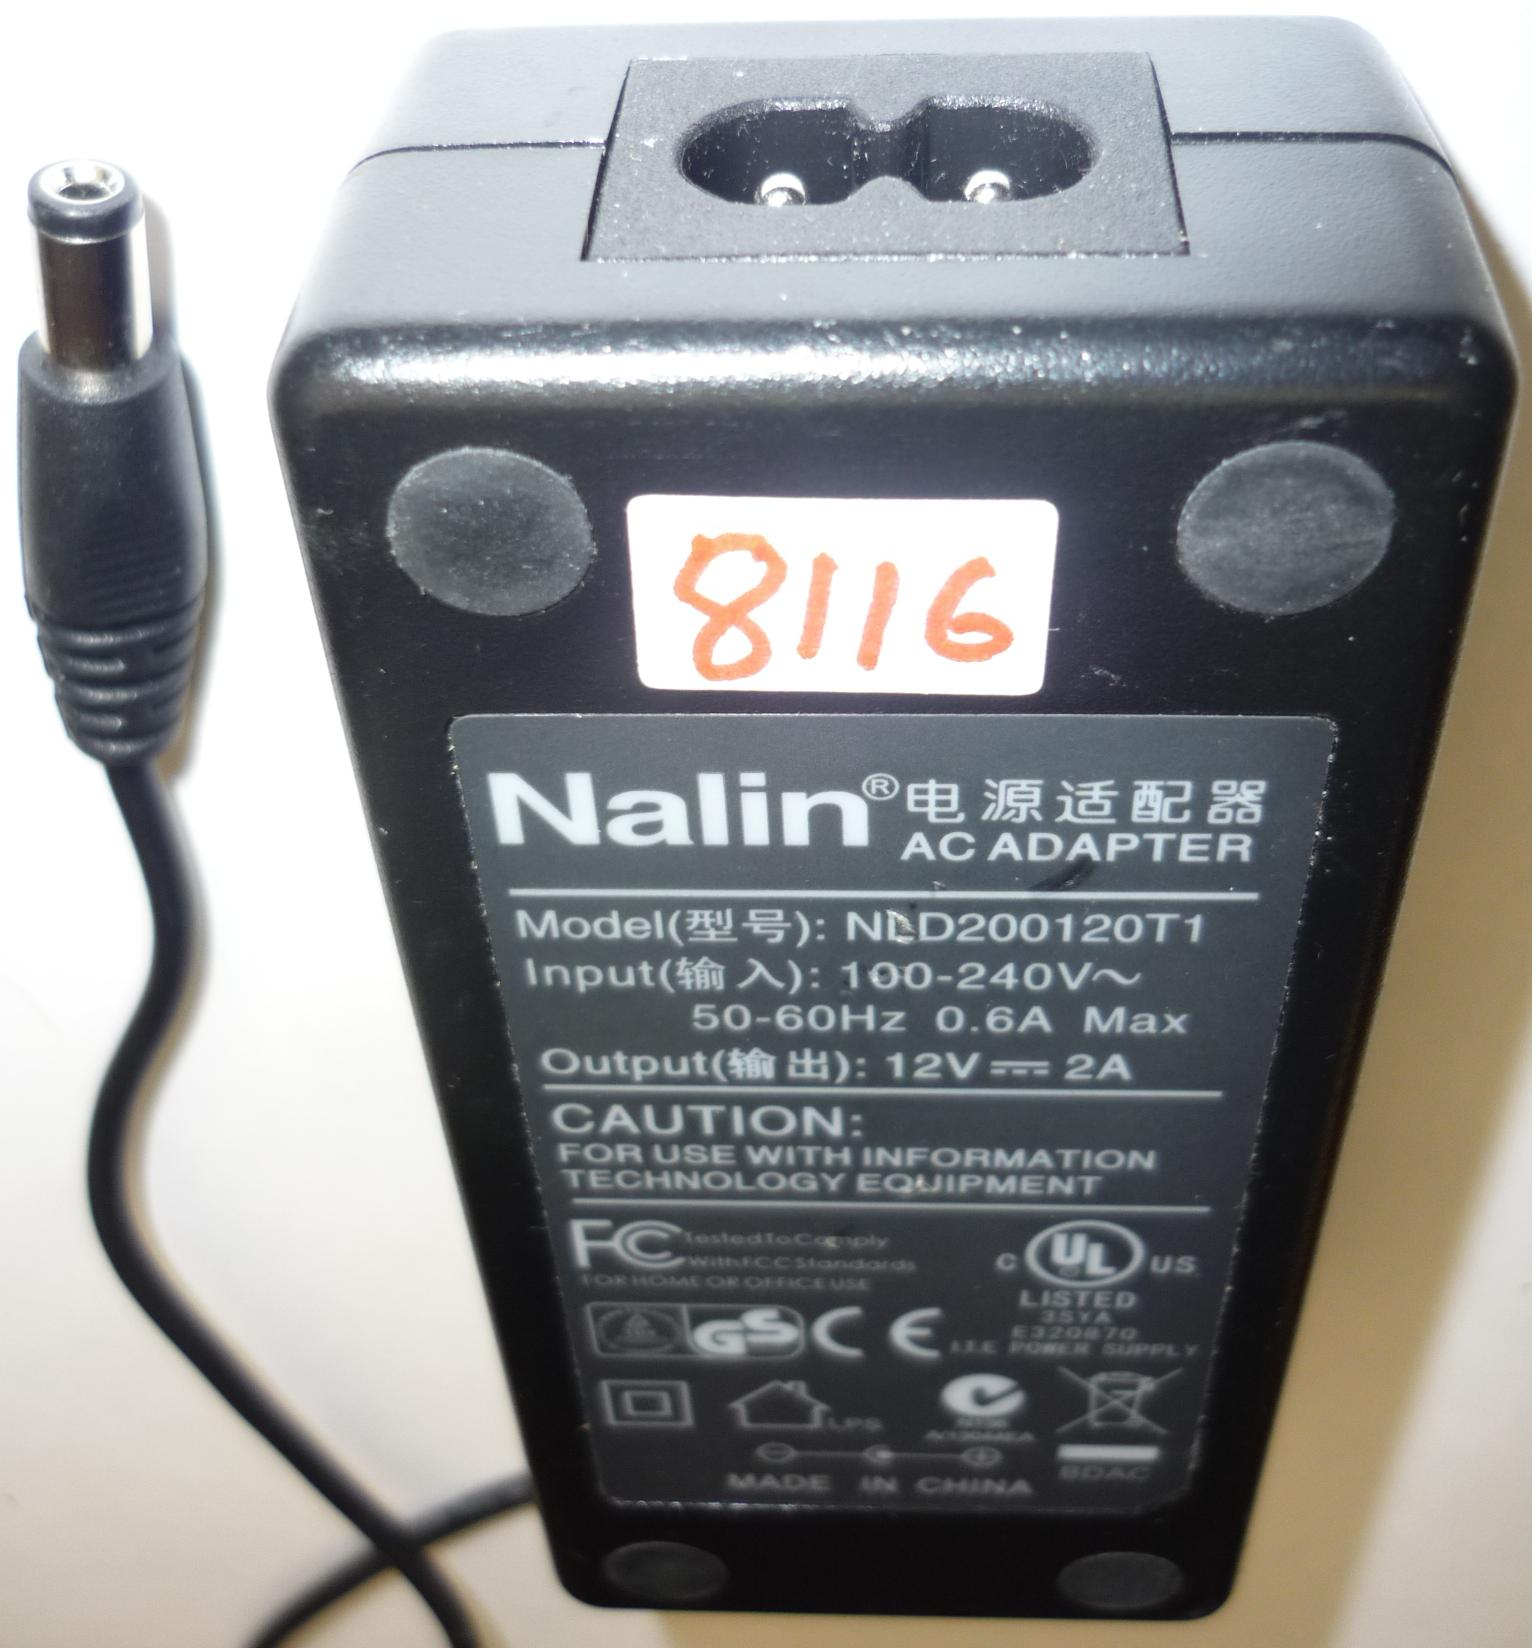 NALIN NLD200120T1 AC ADAPTER 12VDC 2A USED -(+) 2x5.5mm ROUND BA